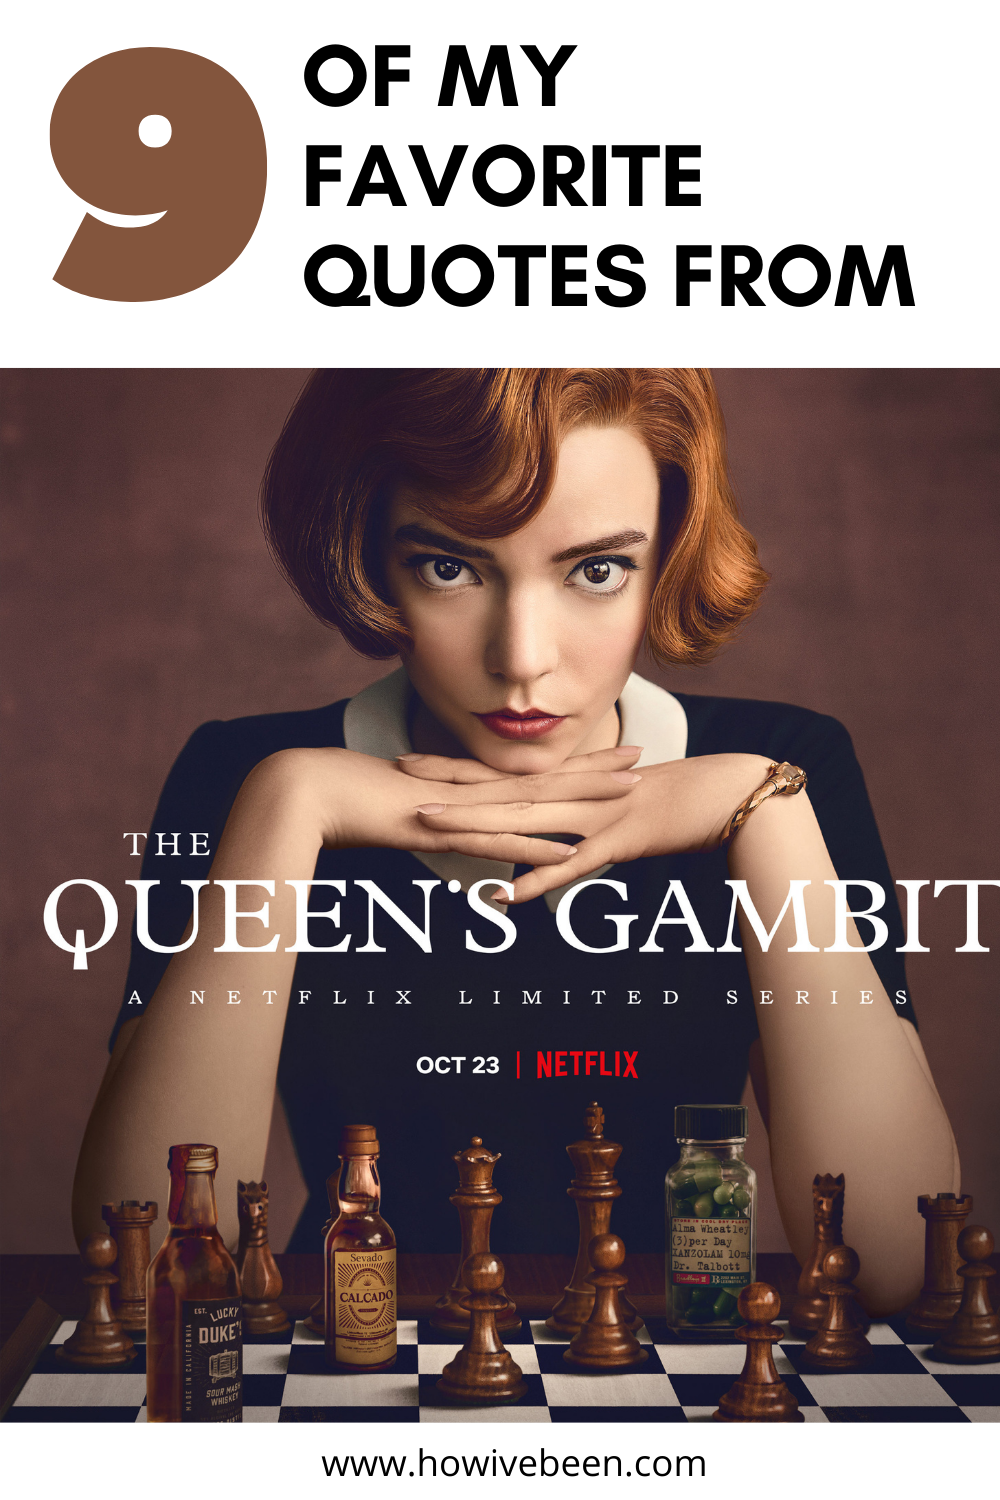 quotes from the queen's gambit